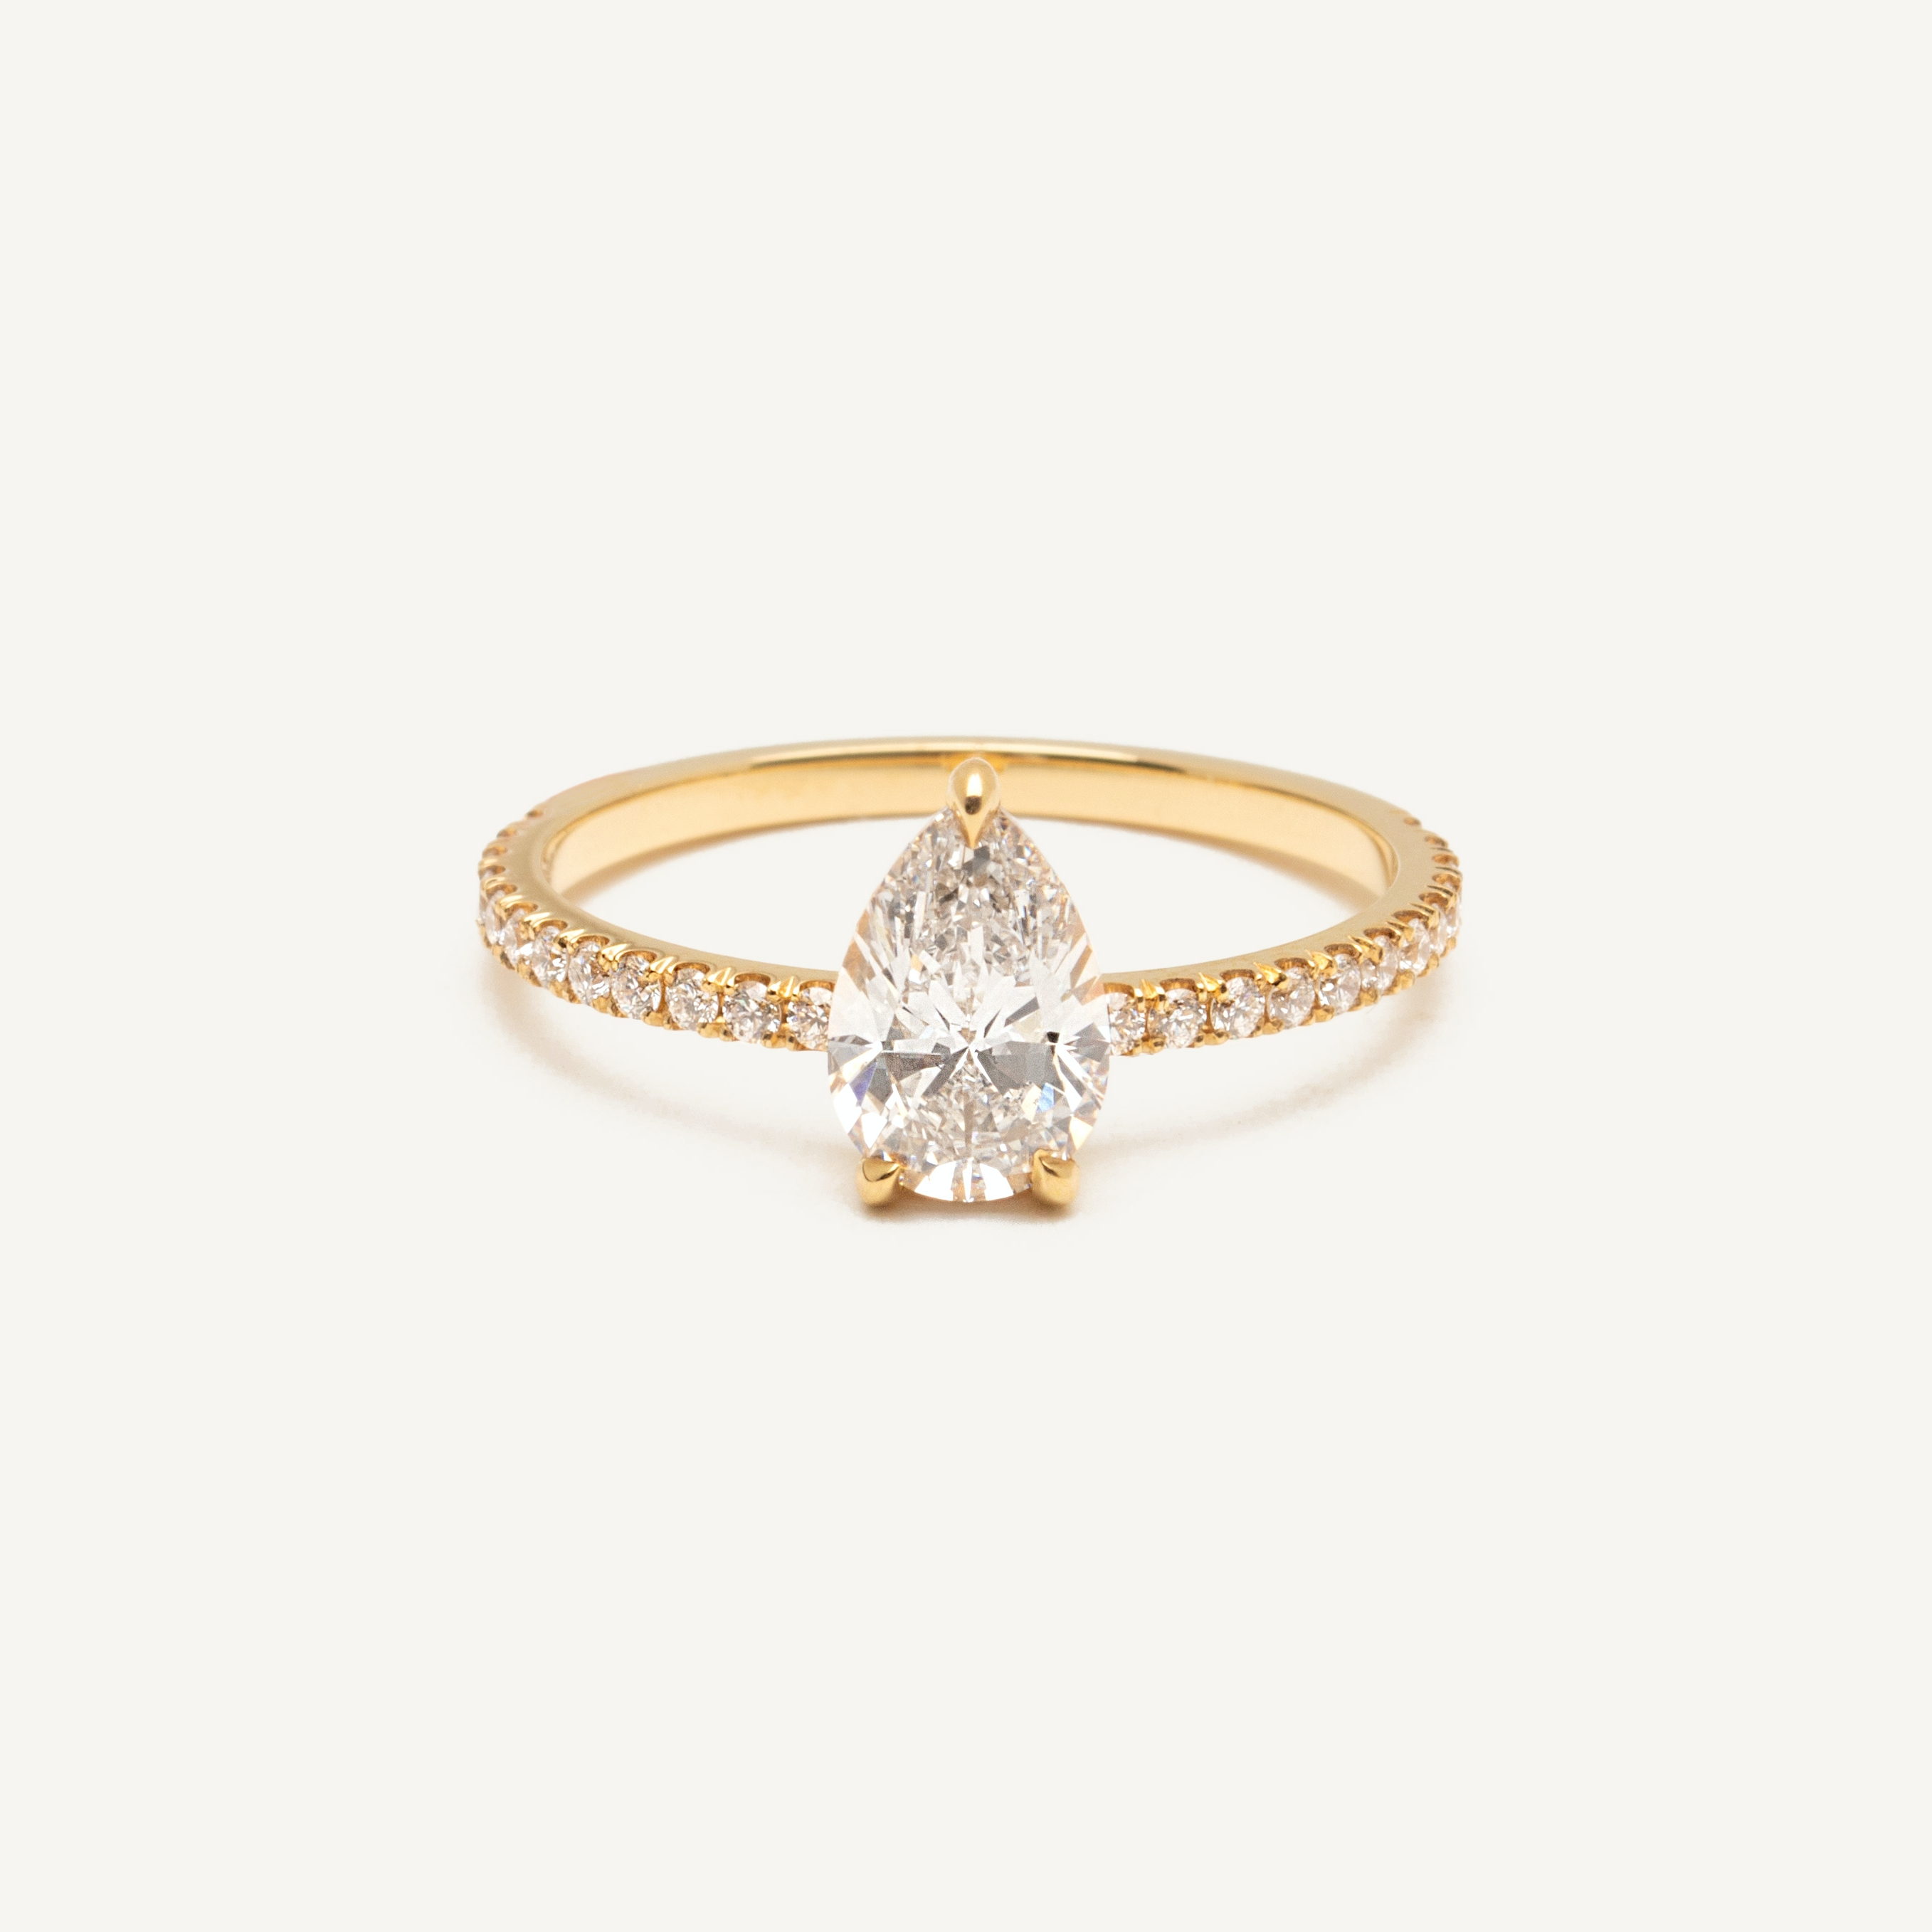 af99eeaa6 Pear Pavé Diamond Engagement Ring by Vrai & Oro